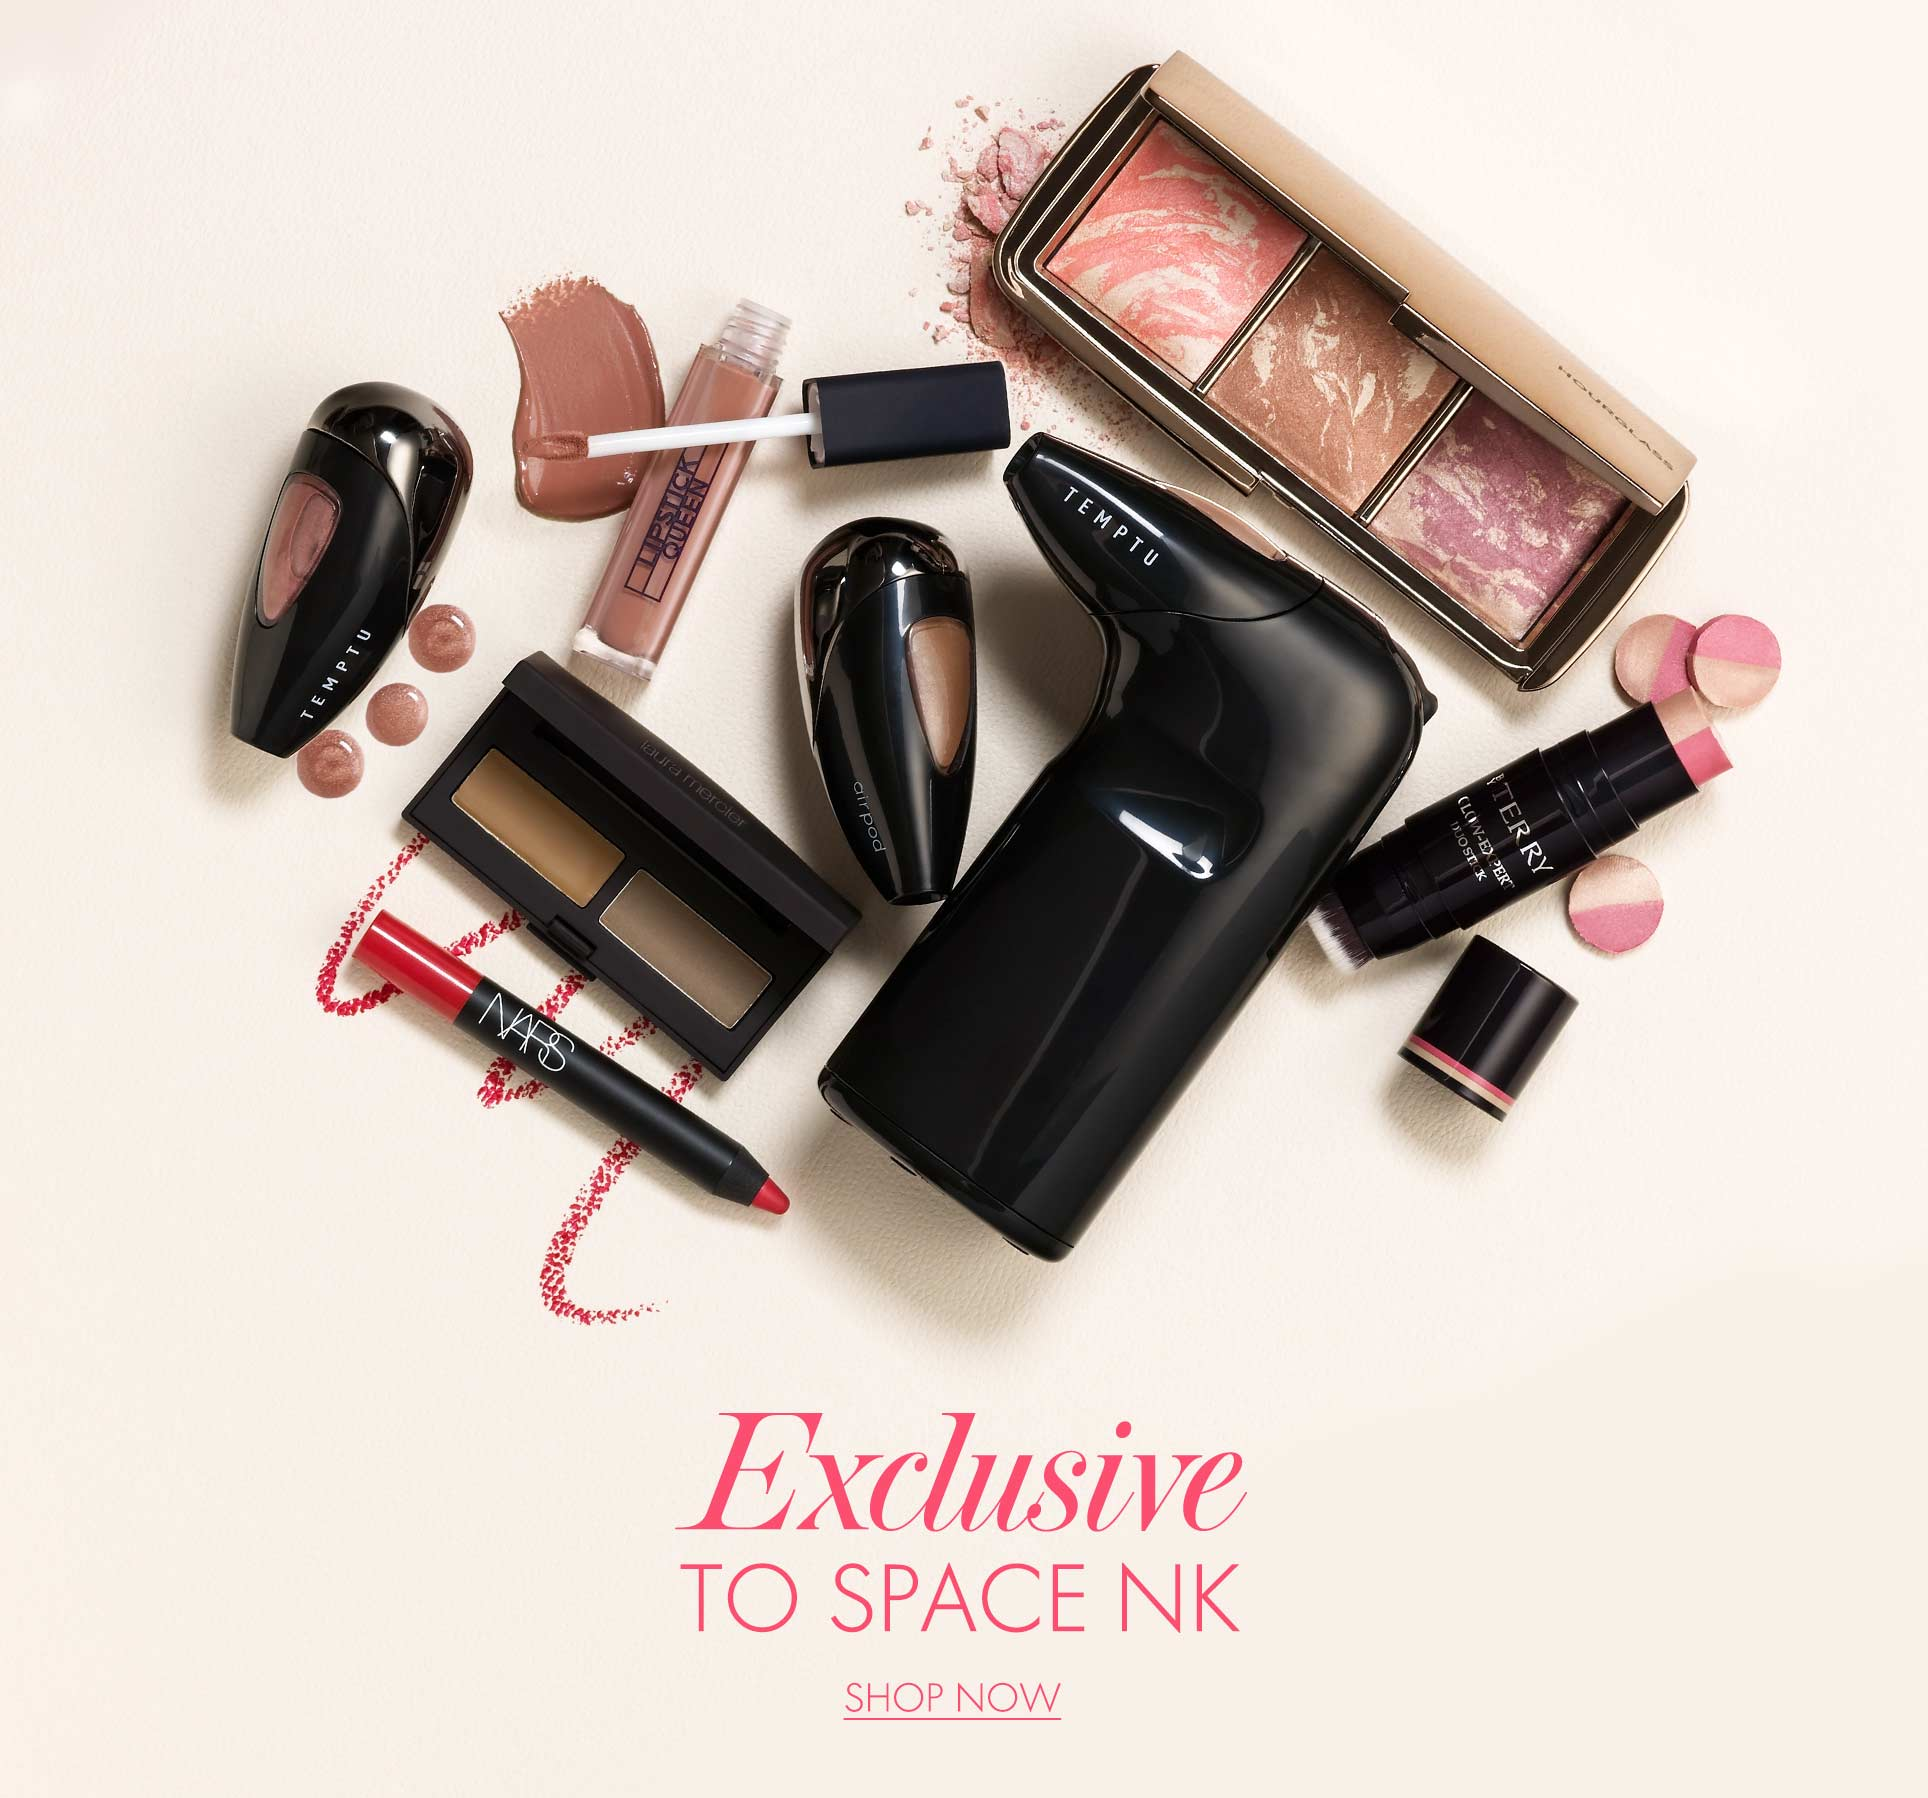 Space NK Exclusive